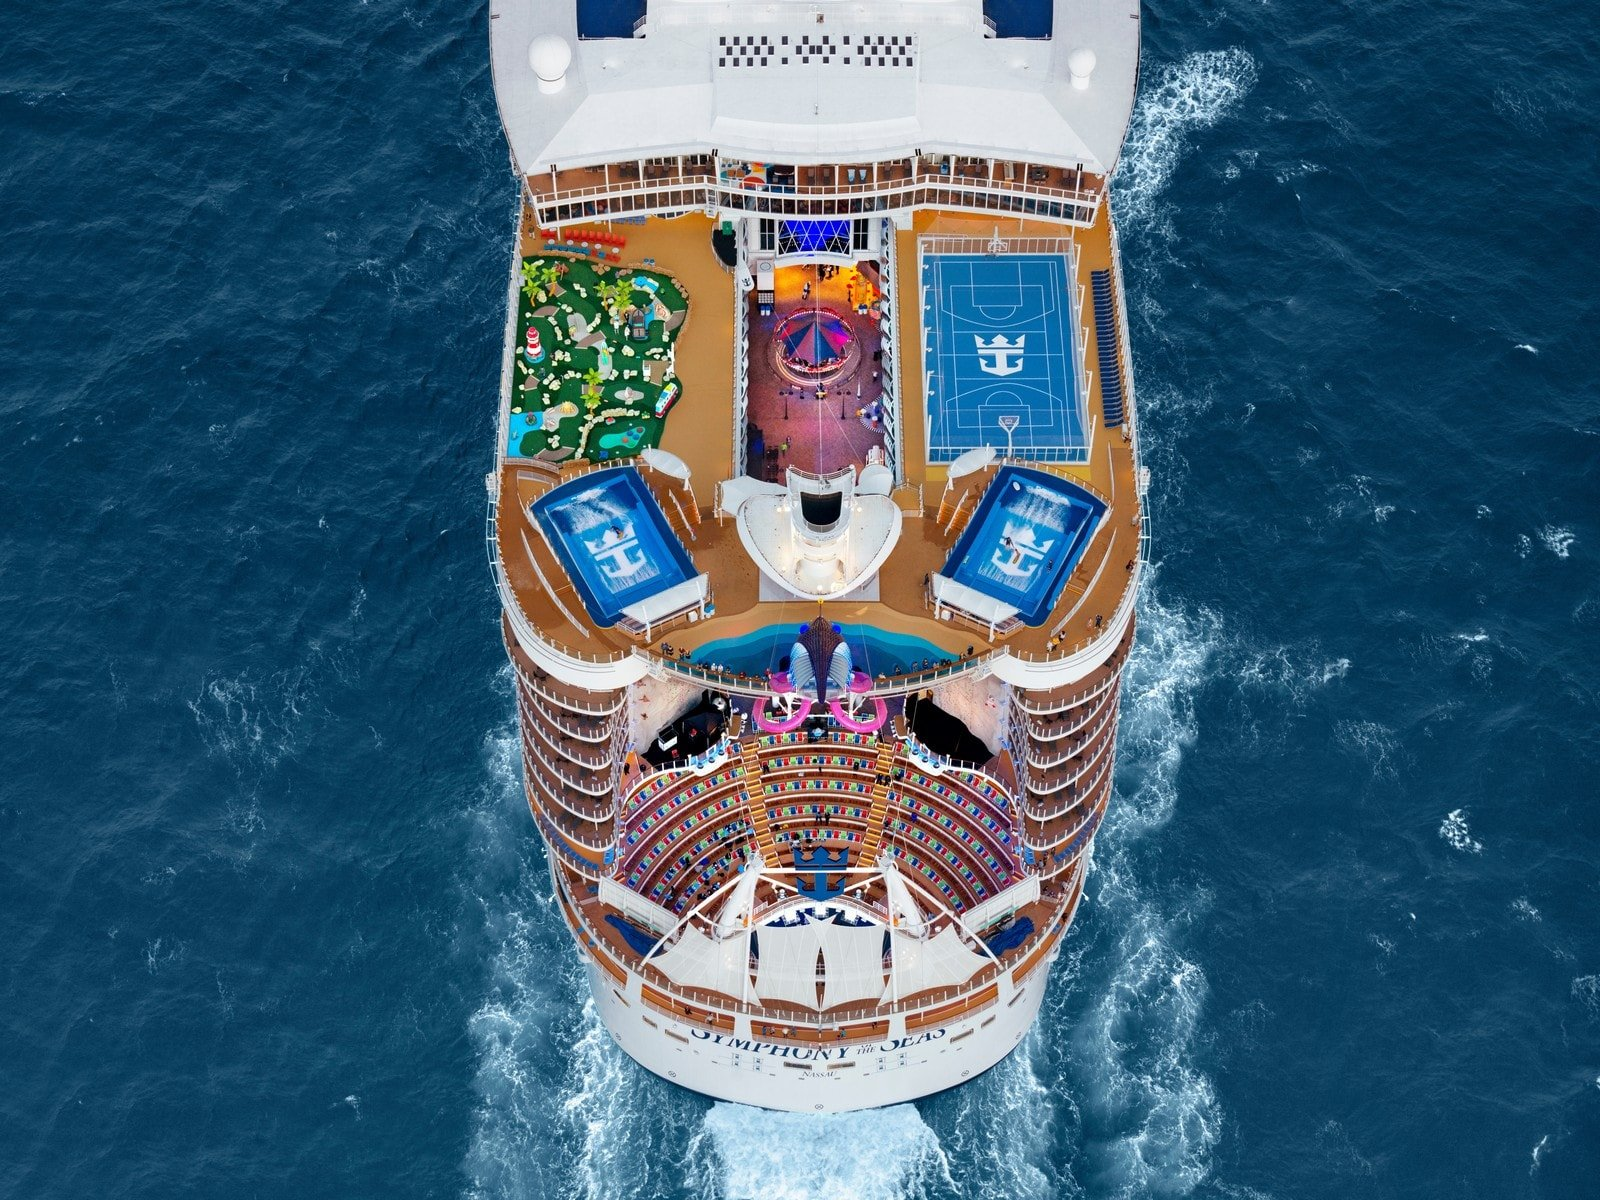 Sports deck aerial photo of Symphony of the Seas